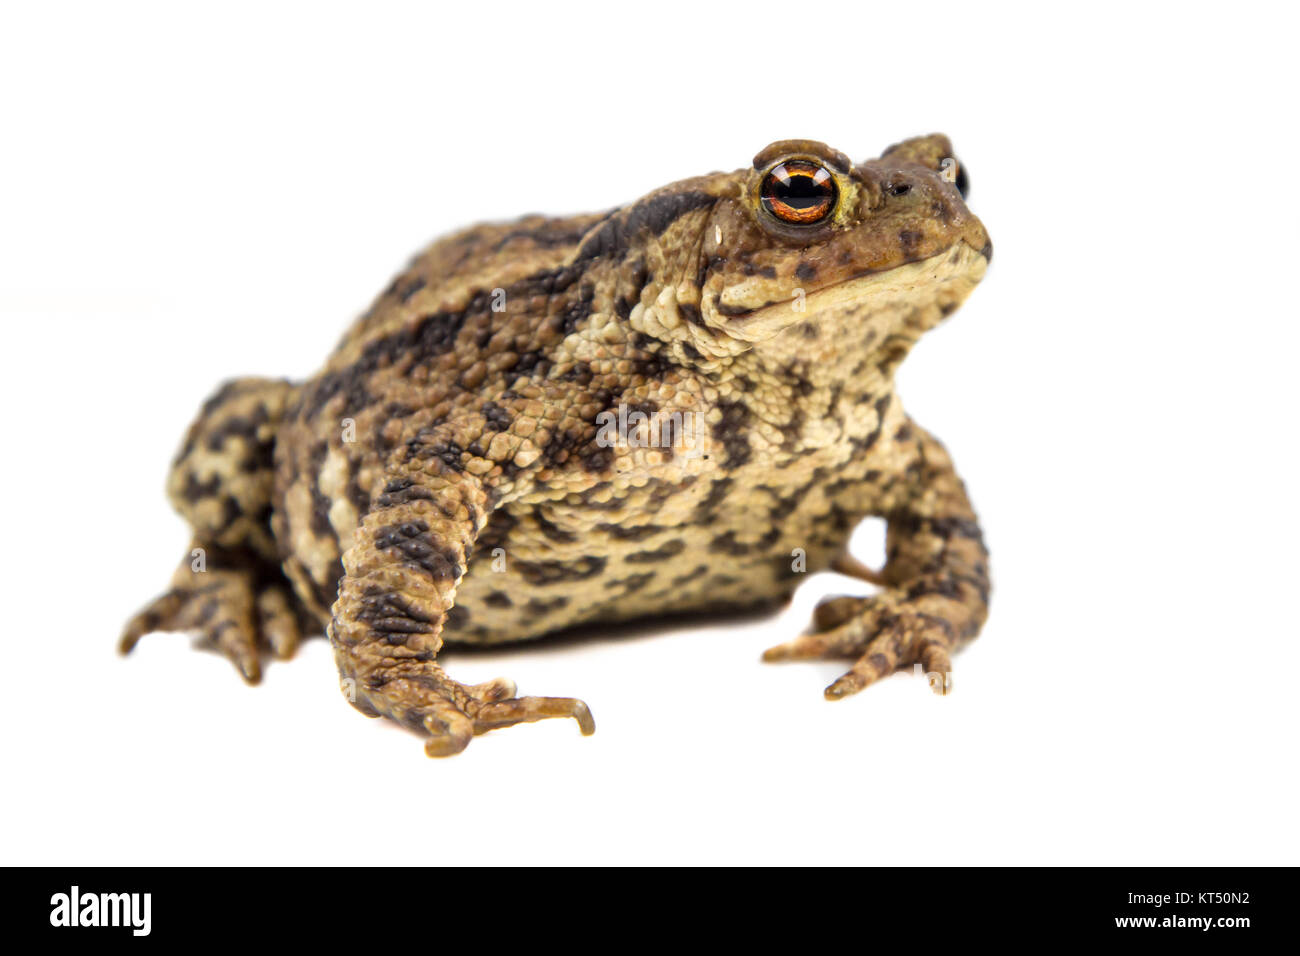 European common toad (Bufo bufo) isolated on white background Stock Photo